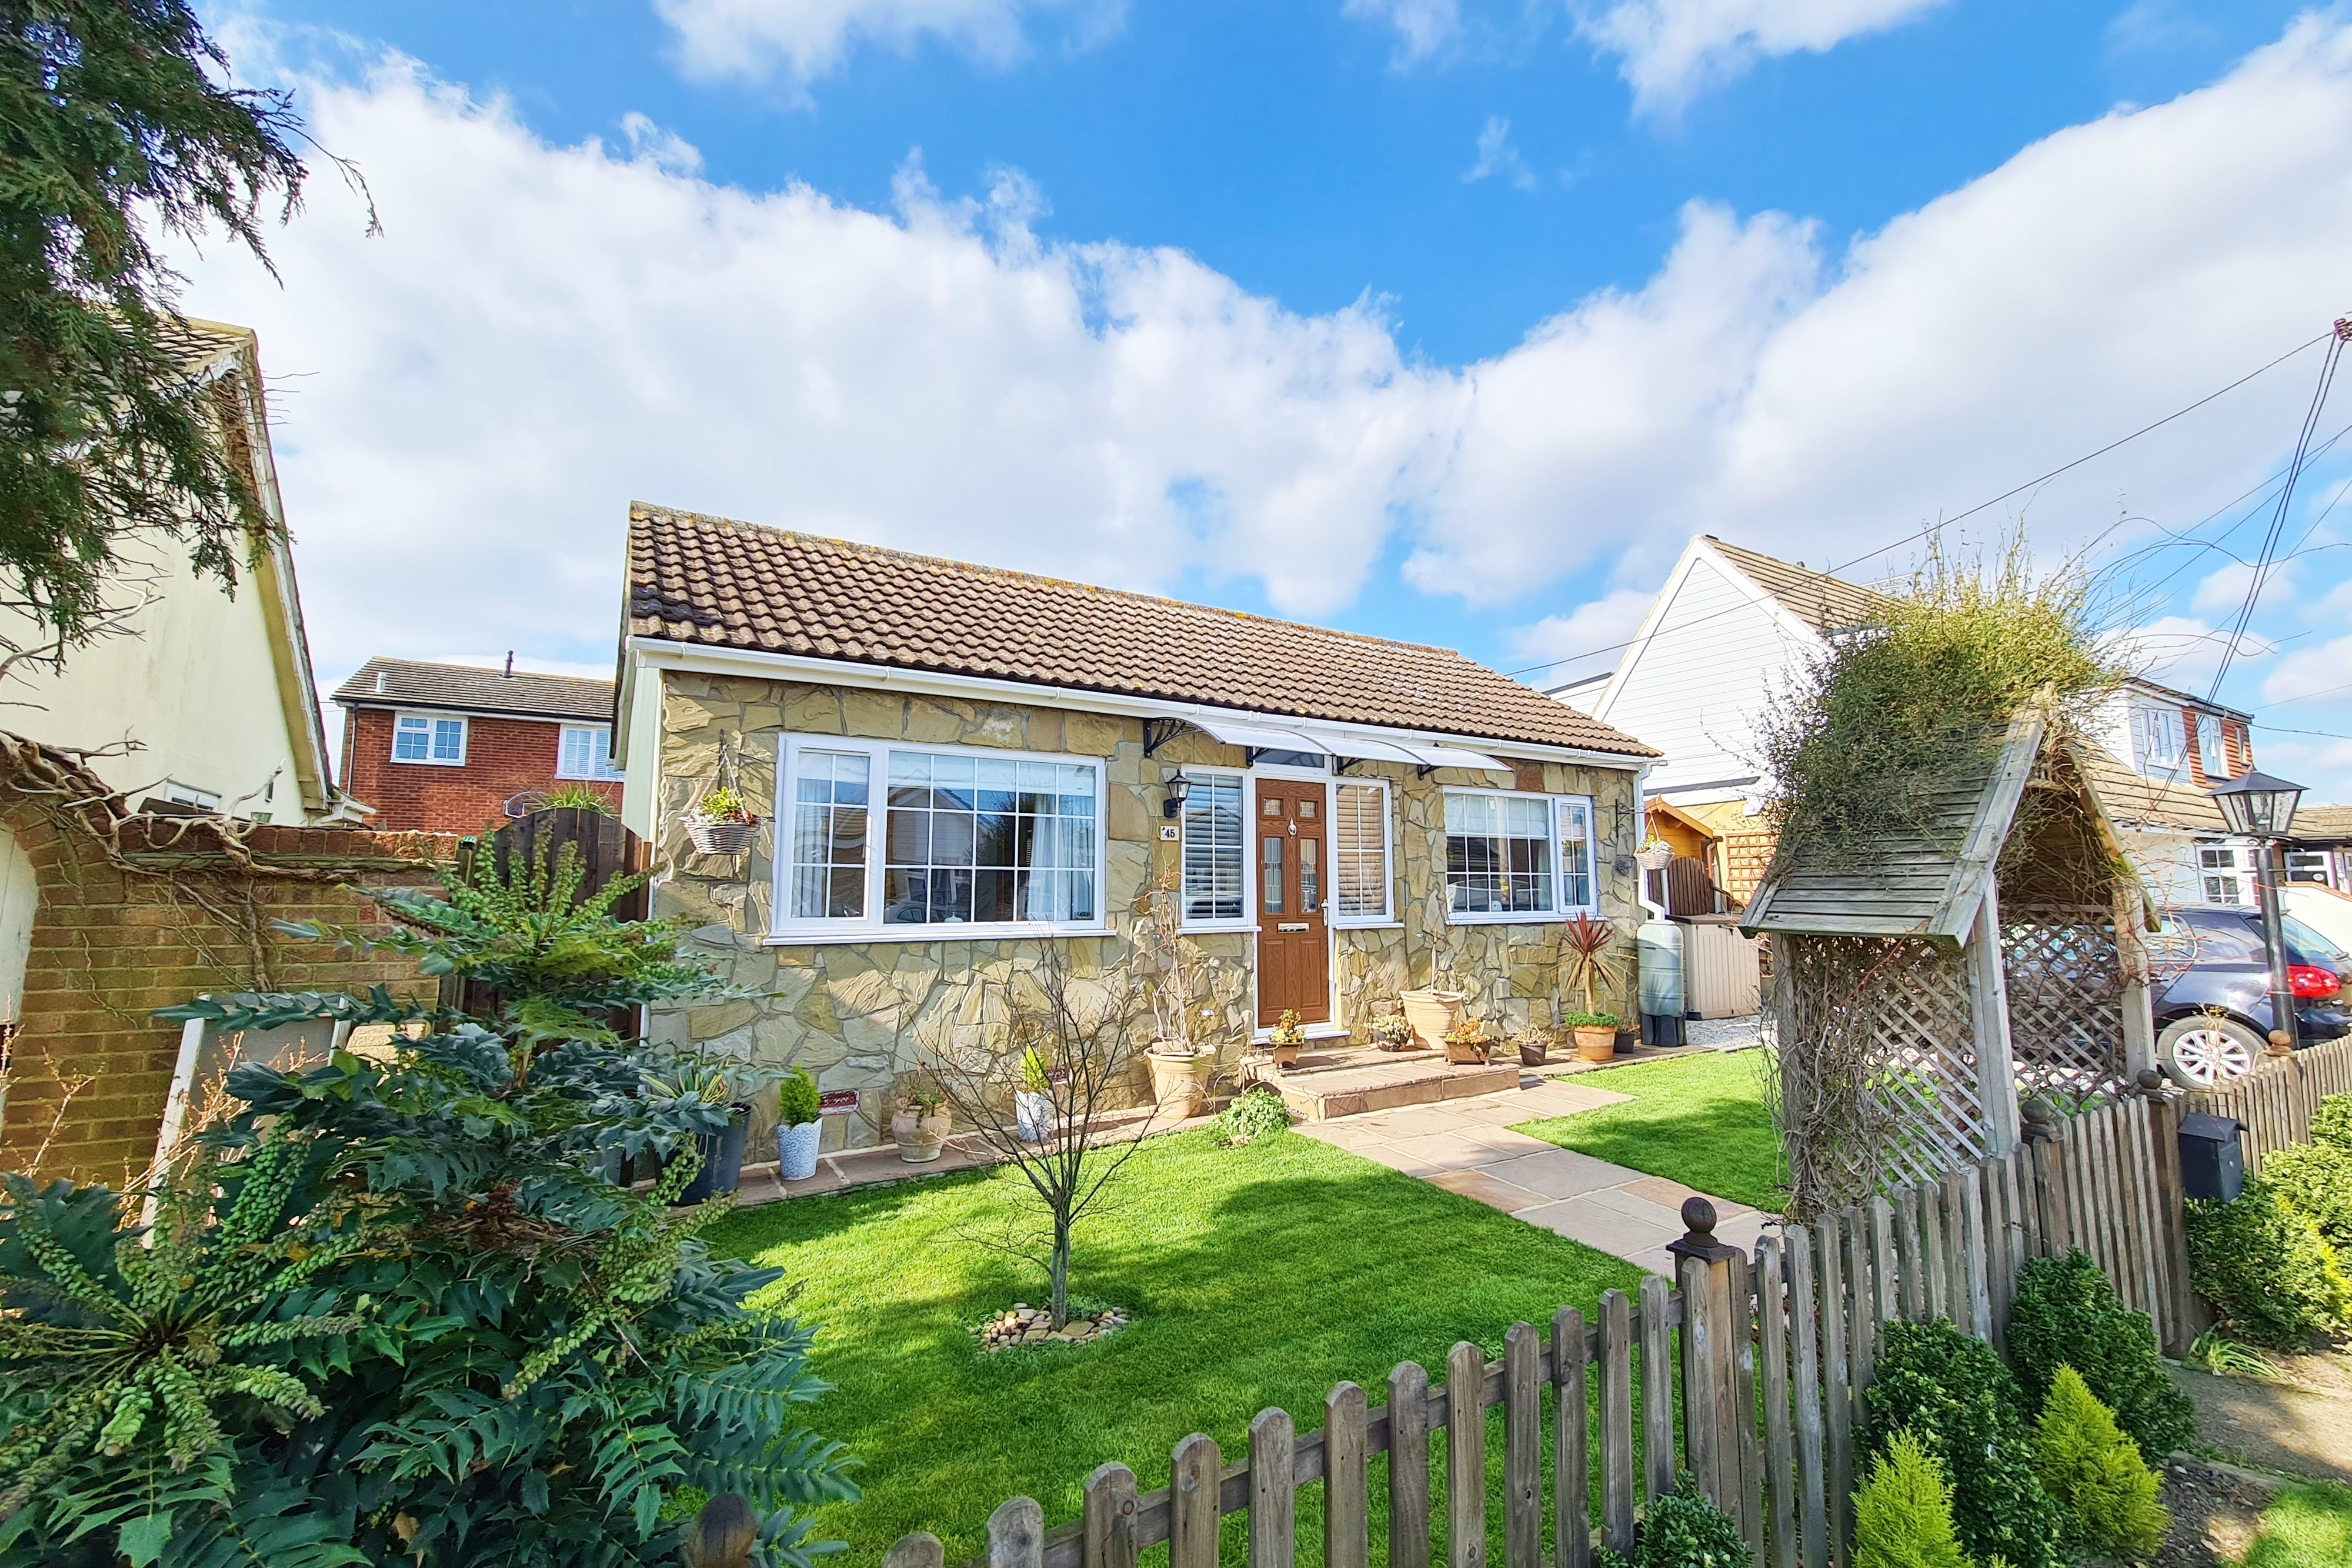 2 bed bungalow for sale in Canvey Island, Essex  - Property Image 1